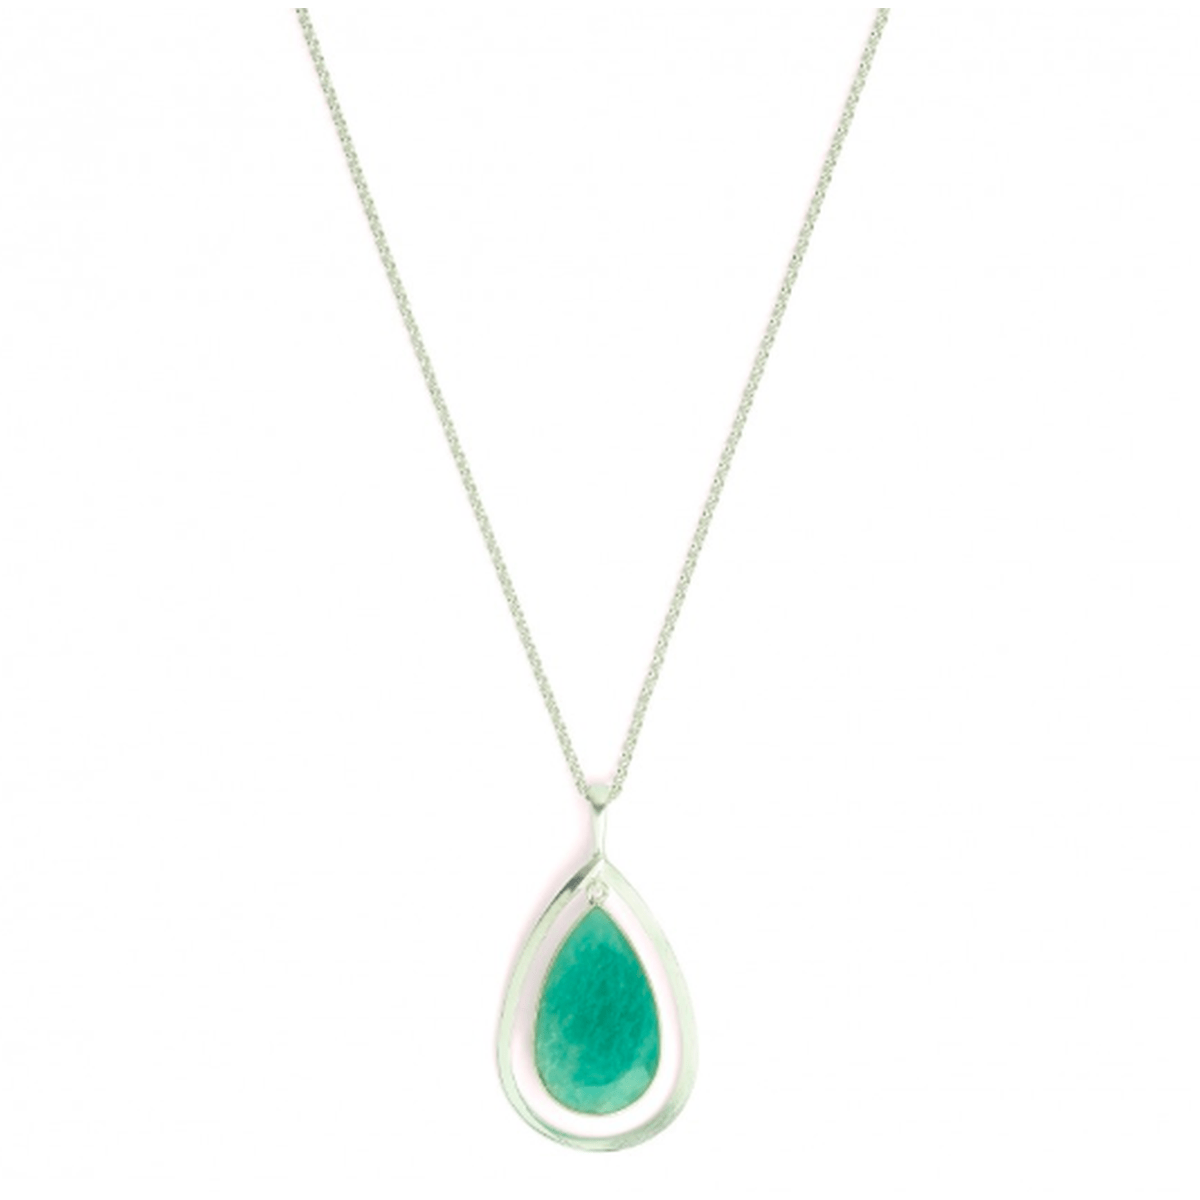 Sequanna Amazonite Necklace - 87852404-Bernd Wolf-Renee Taylor Gallery